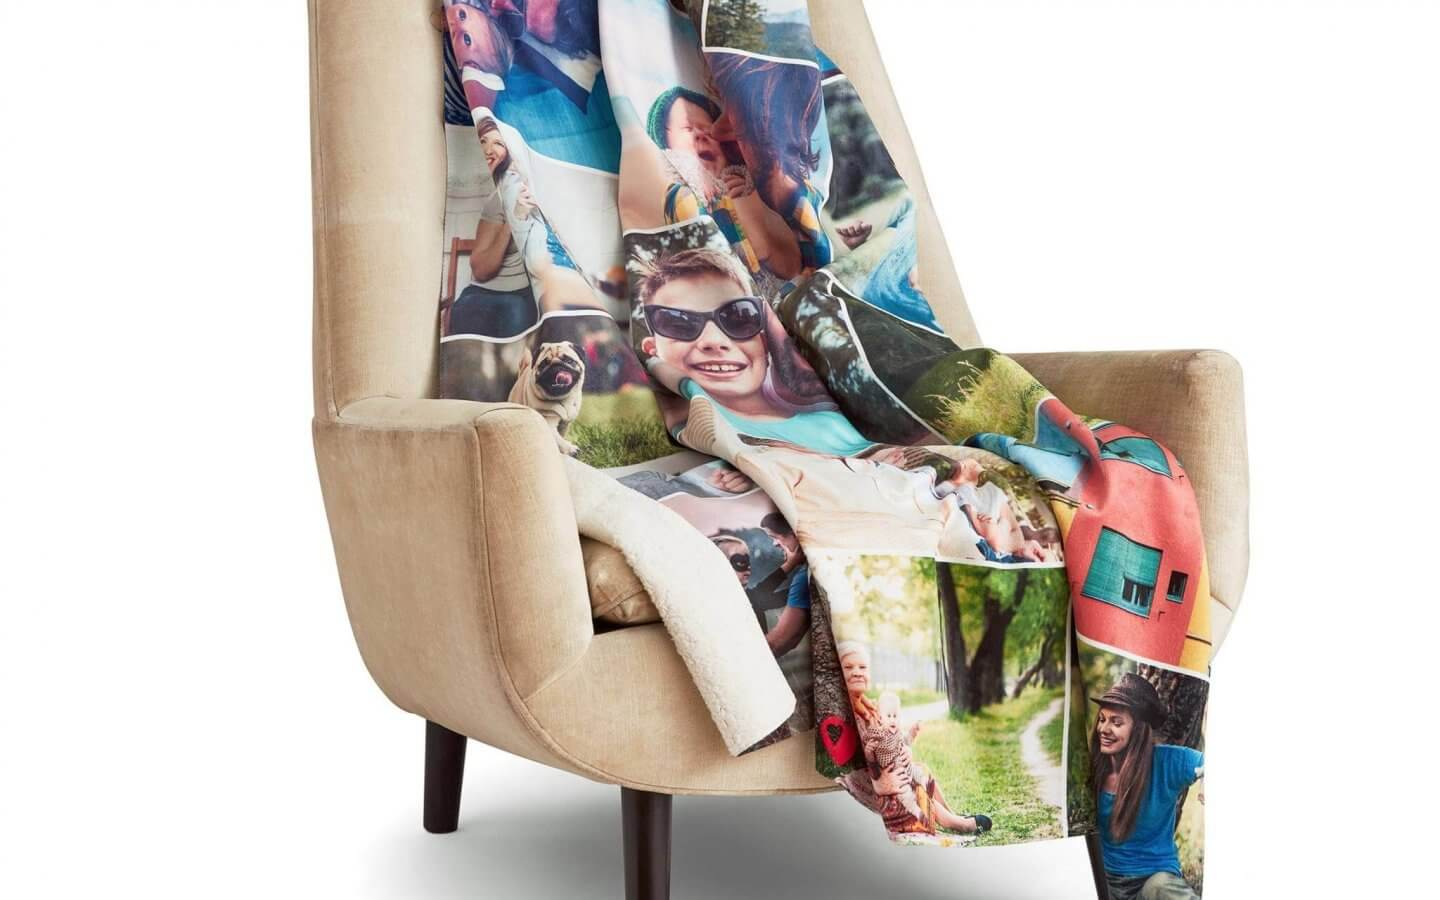 Photo blanket on a chair